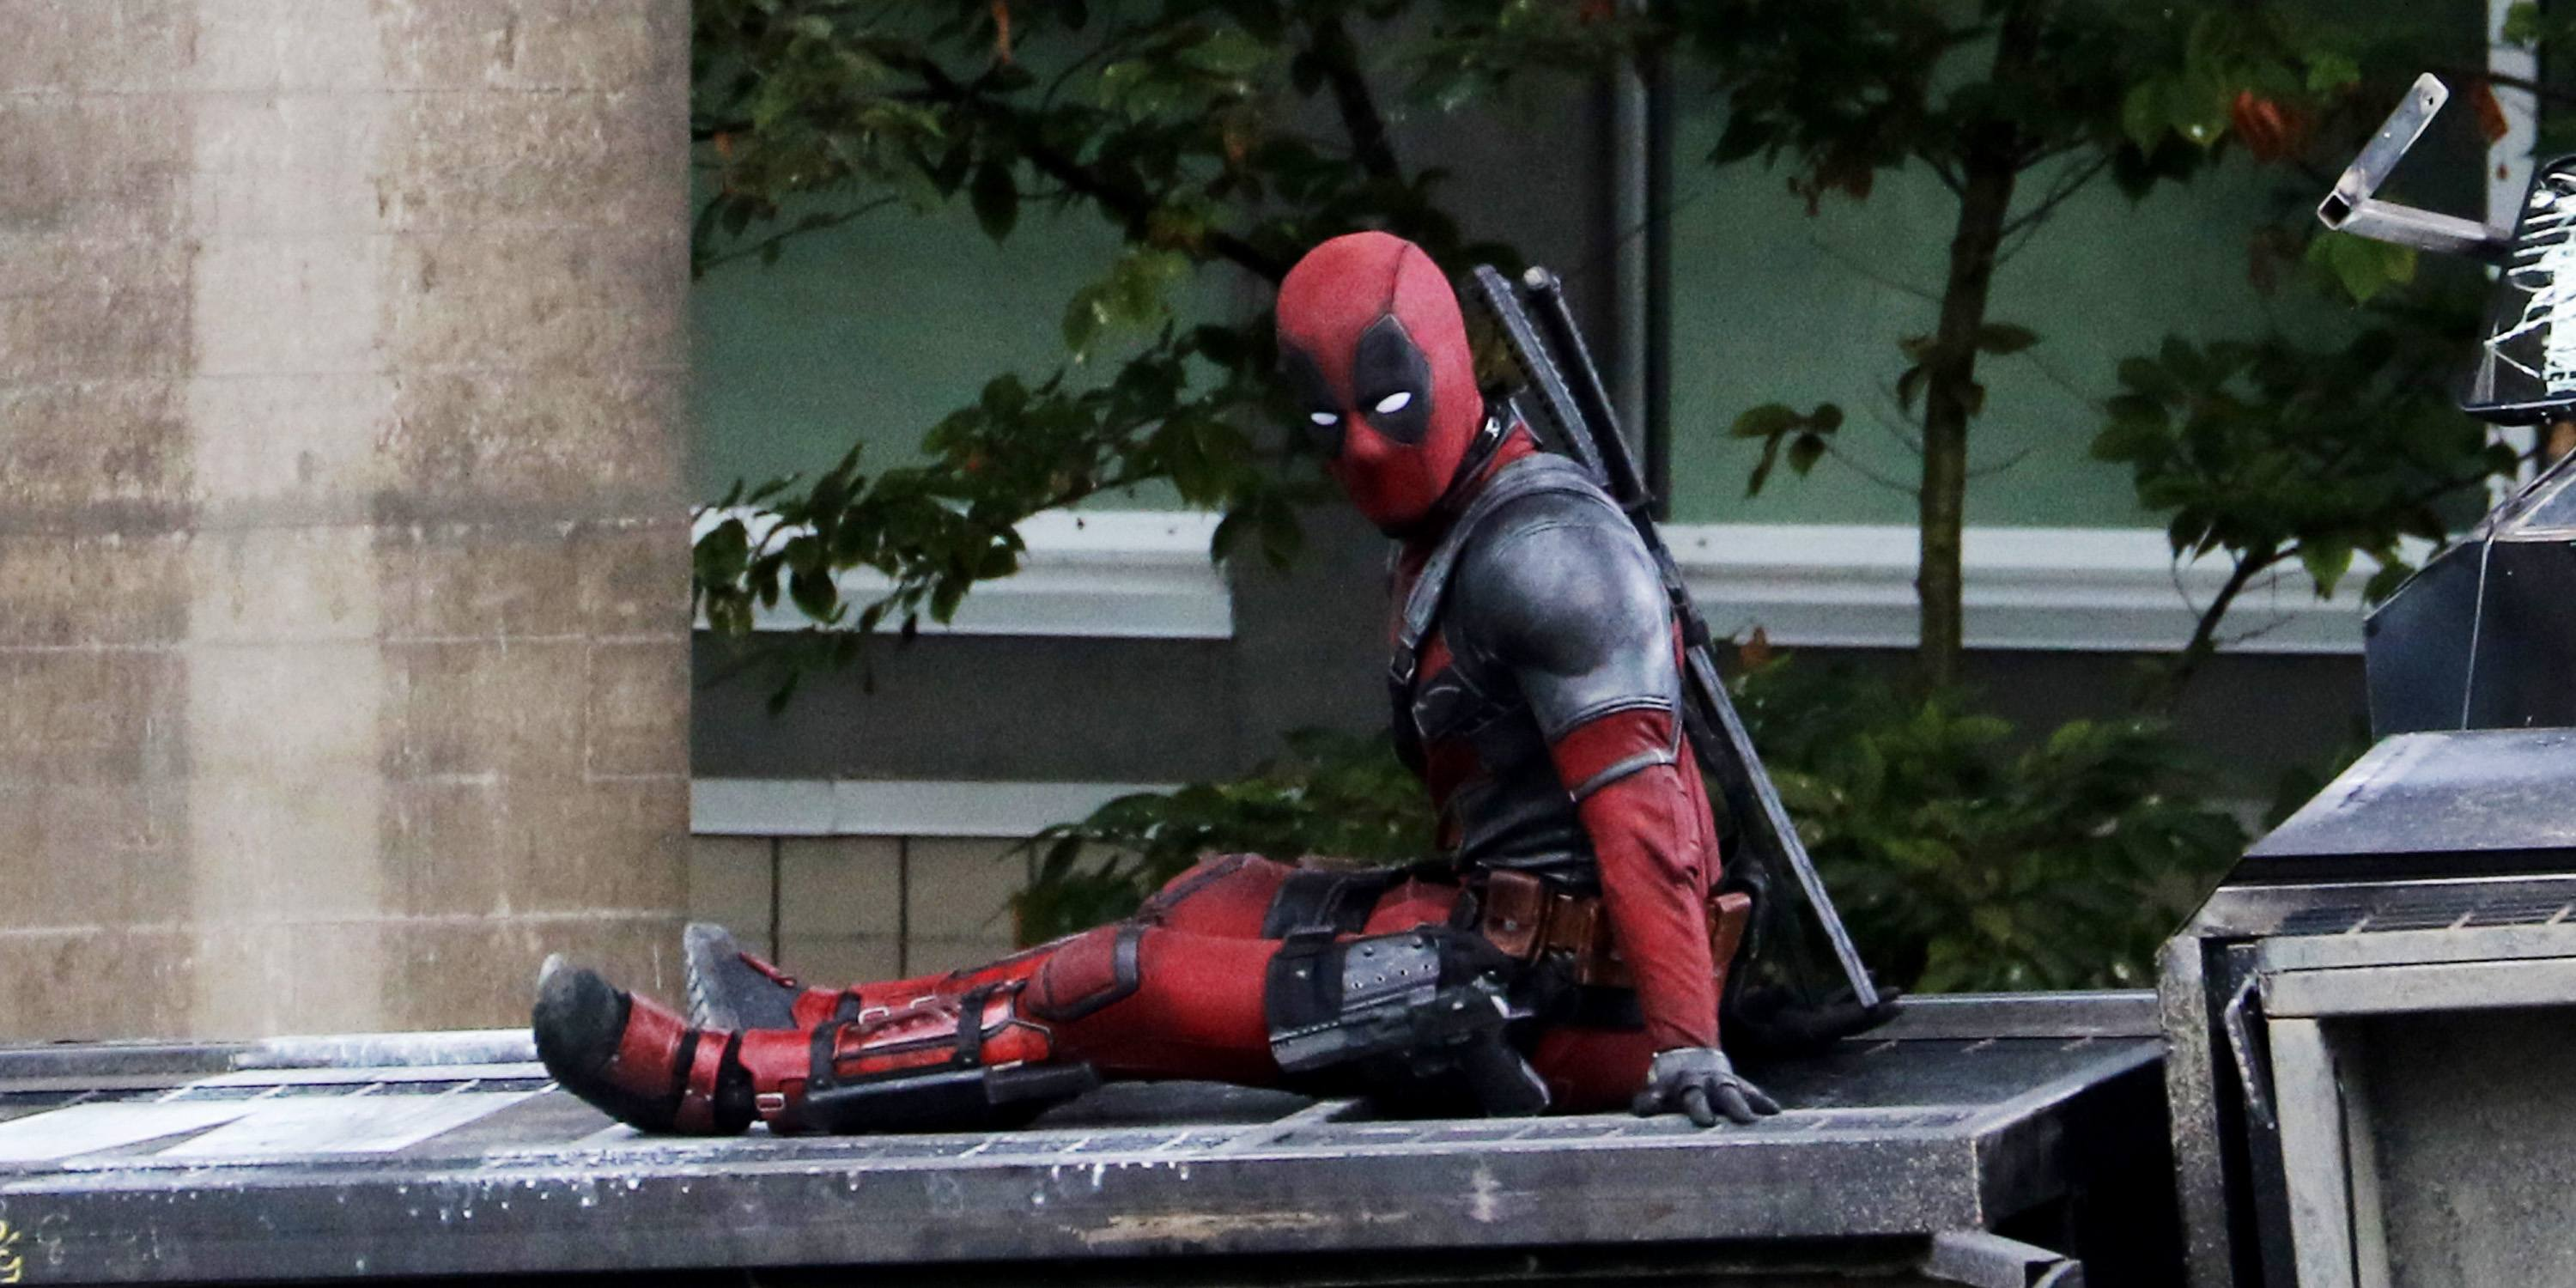 Ryan Reynolds spotted on Deadpool 2 set days after tragic accident (PHOTOS)